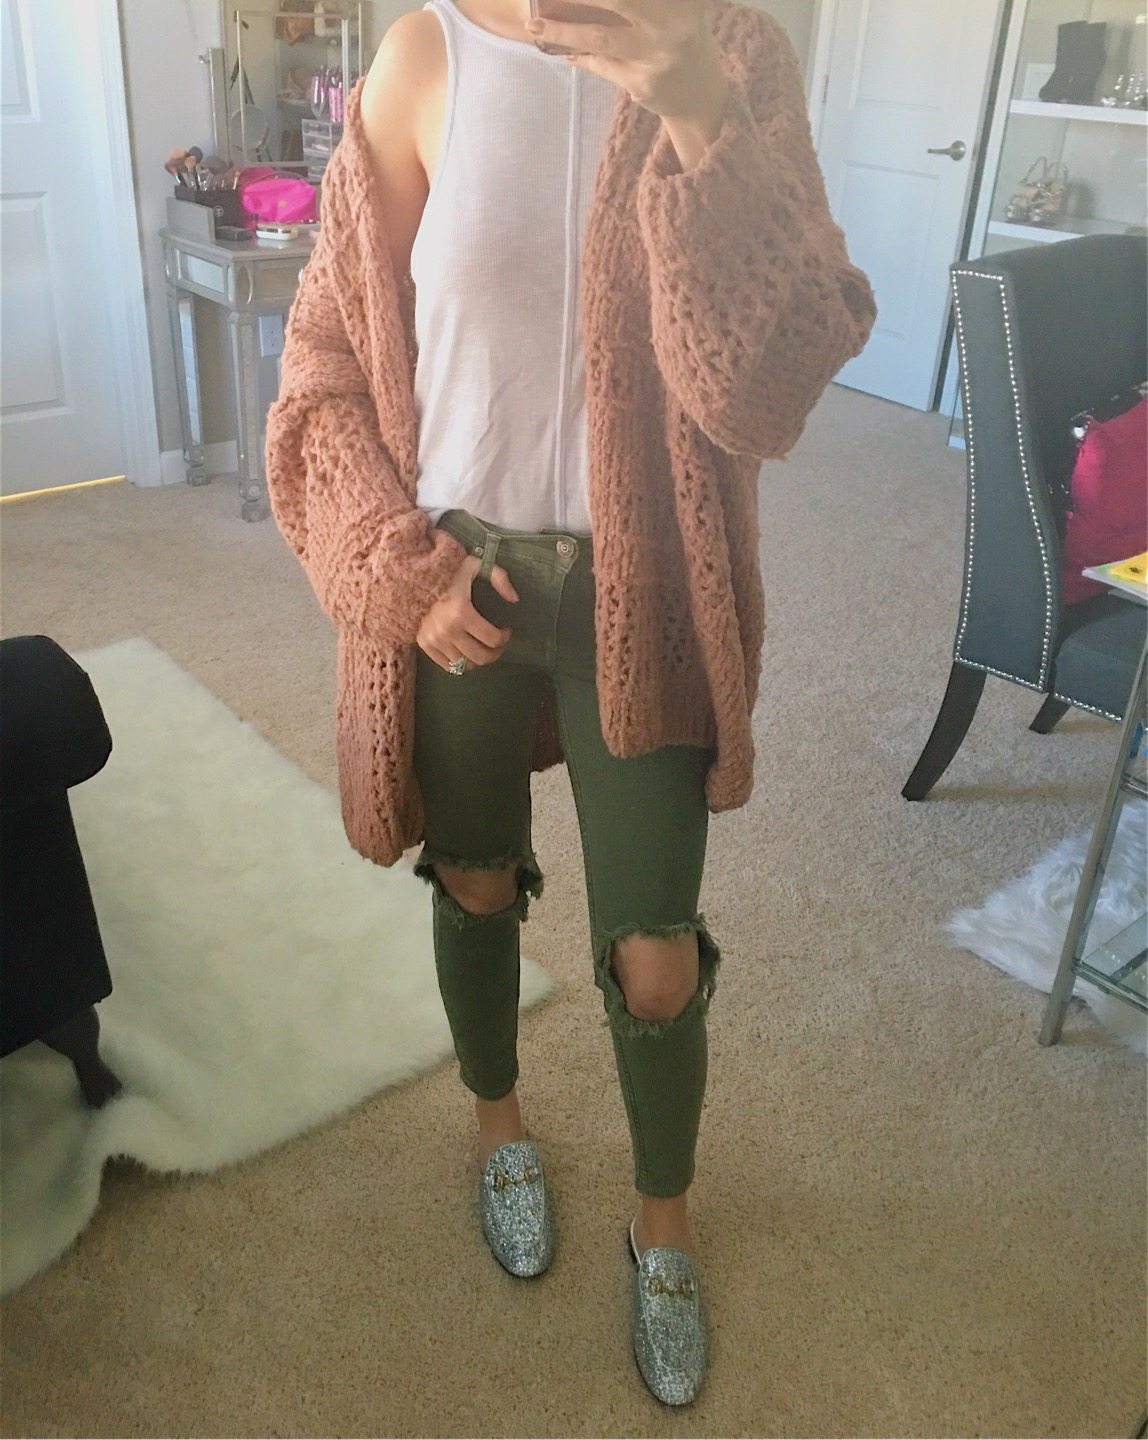 November Instagram Outfits Recap, Black Friday deals, Black Friday 2017, free people busted knee jeans, free people olive green jeans, free people Saturday morning cardigan, free people sleek n easy tank, Gucci Princeton glitter mule